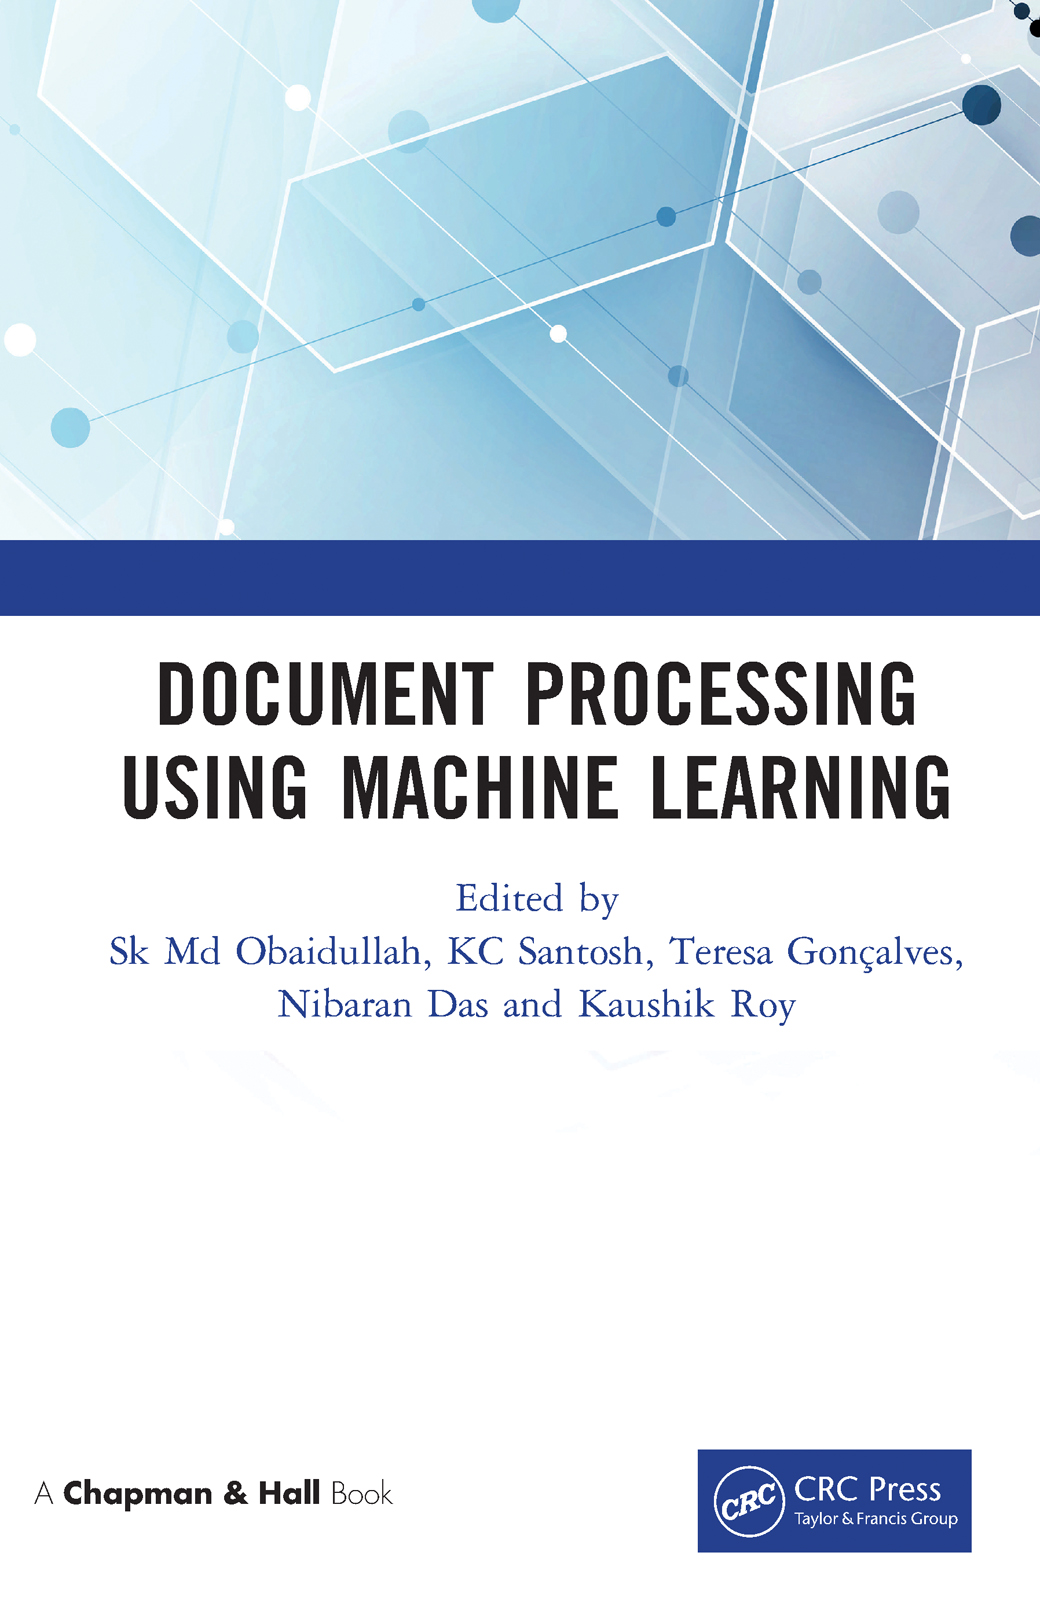 Document Processing Using Machine Learning book cover